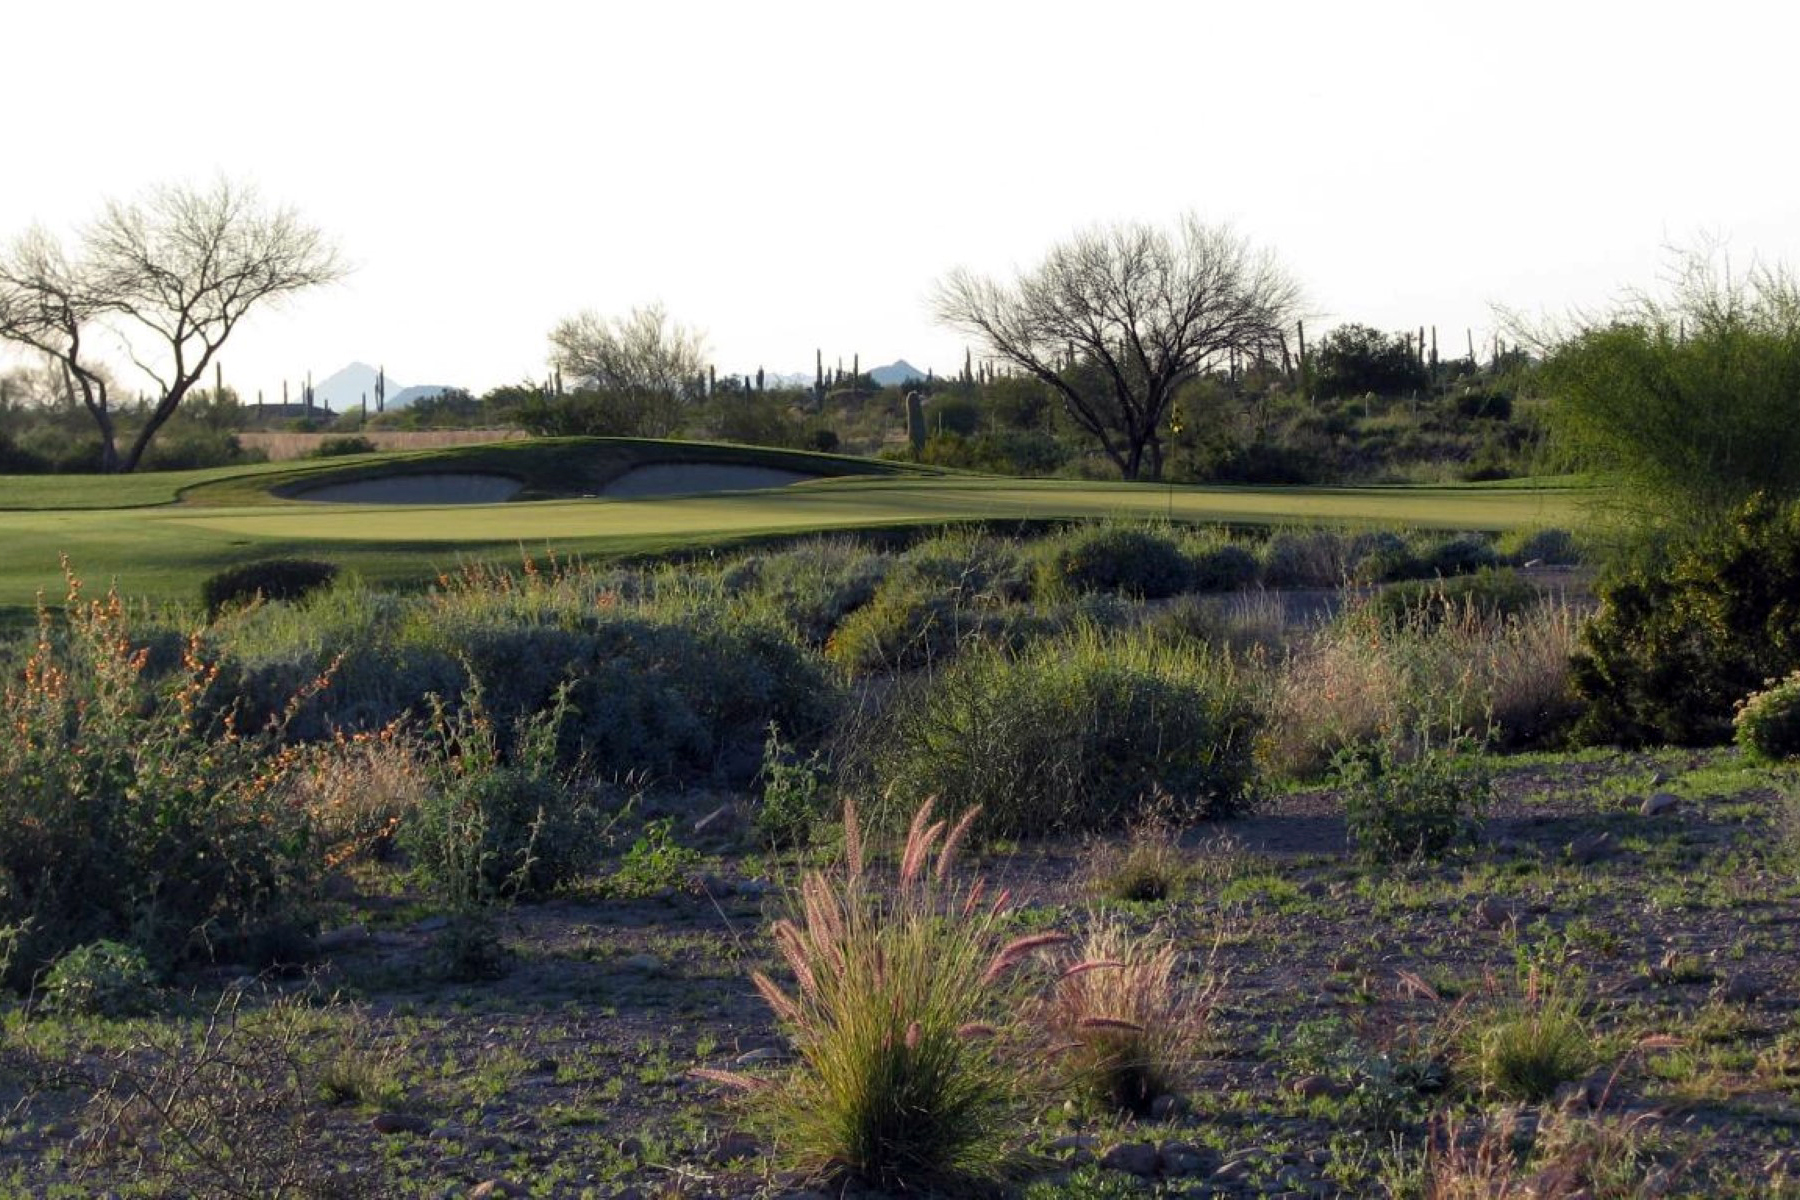 Terreno por un Venta en .64 Acres Lot In The Private Gated Luxury Golf Community Of Superstition Mounta 2866 S Petroglyph Trail #64 Gold Canyon, Arizona, 85118 Estados Unidos